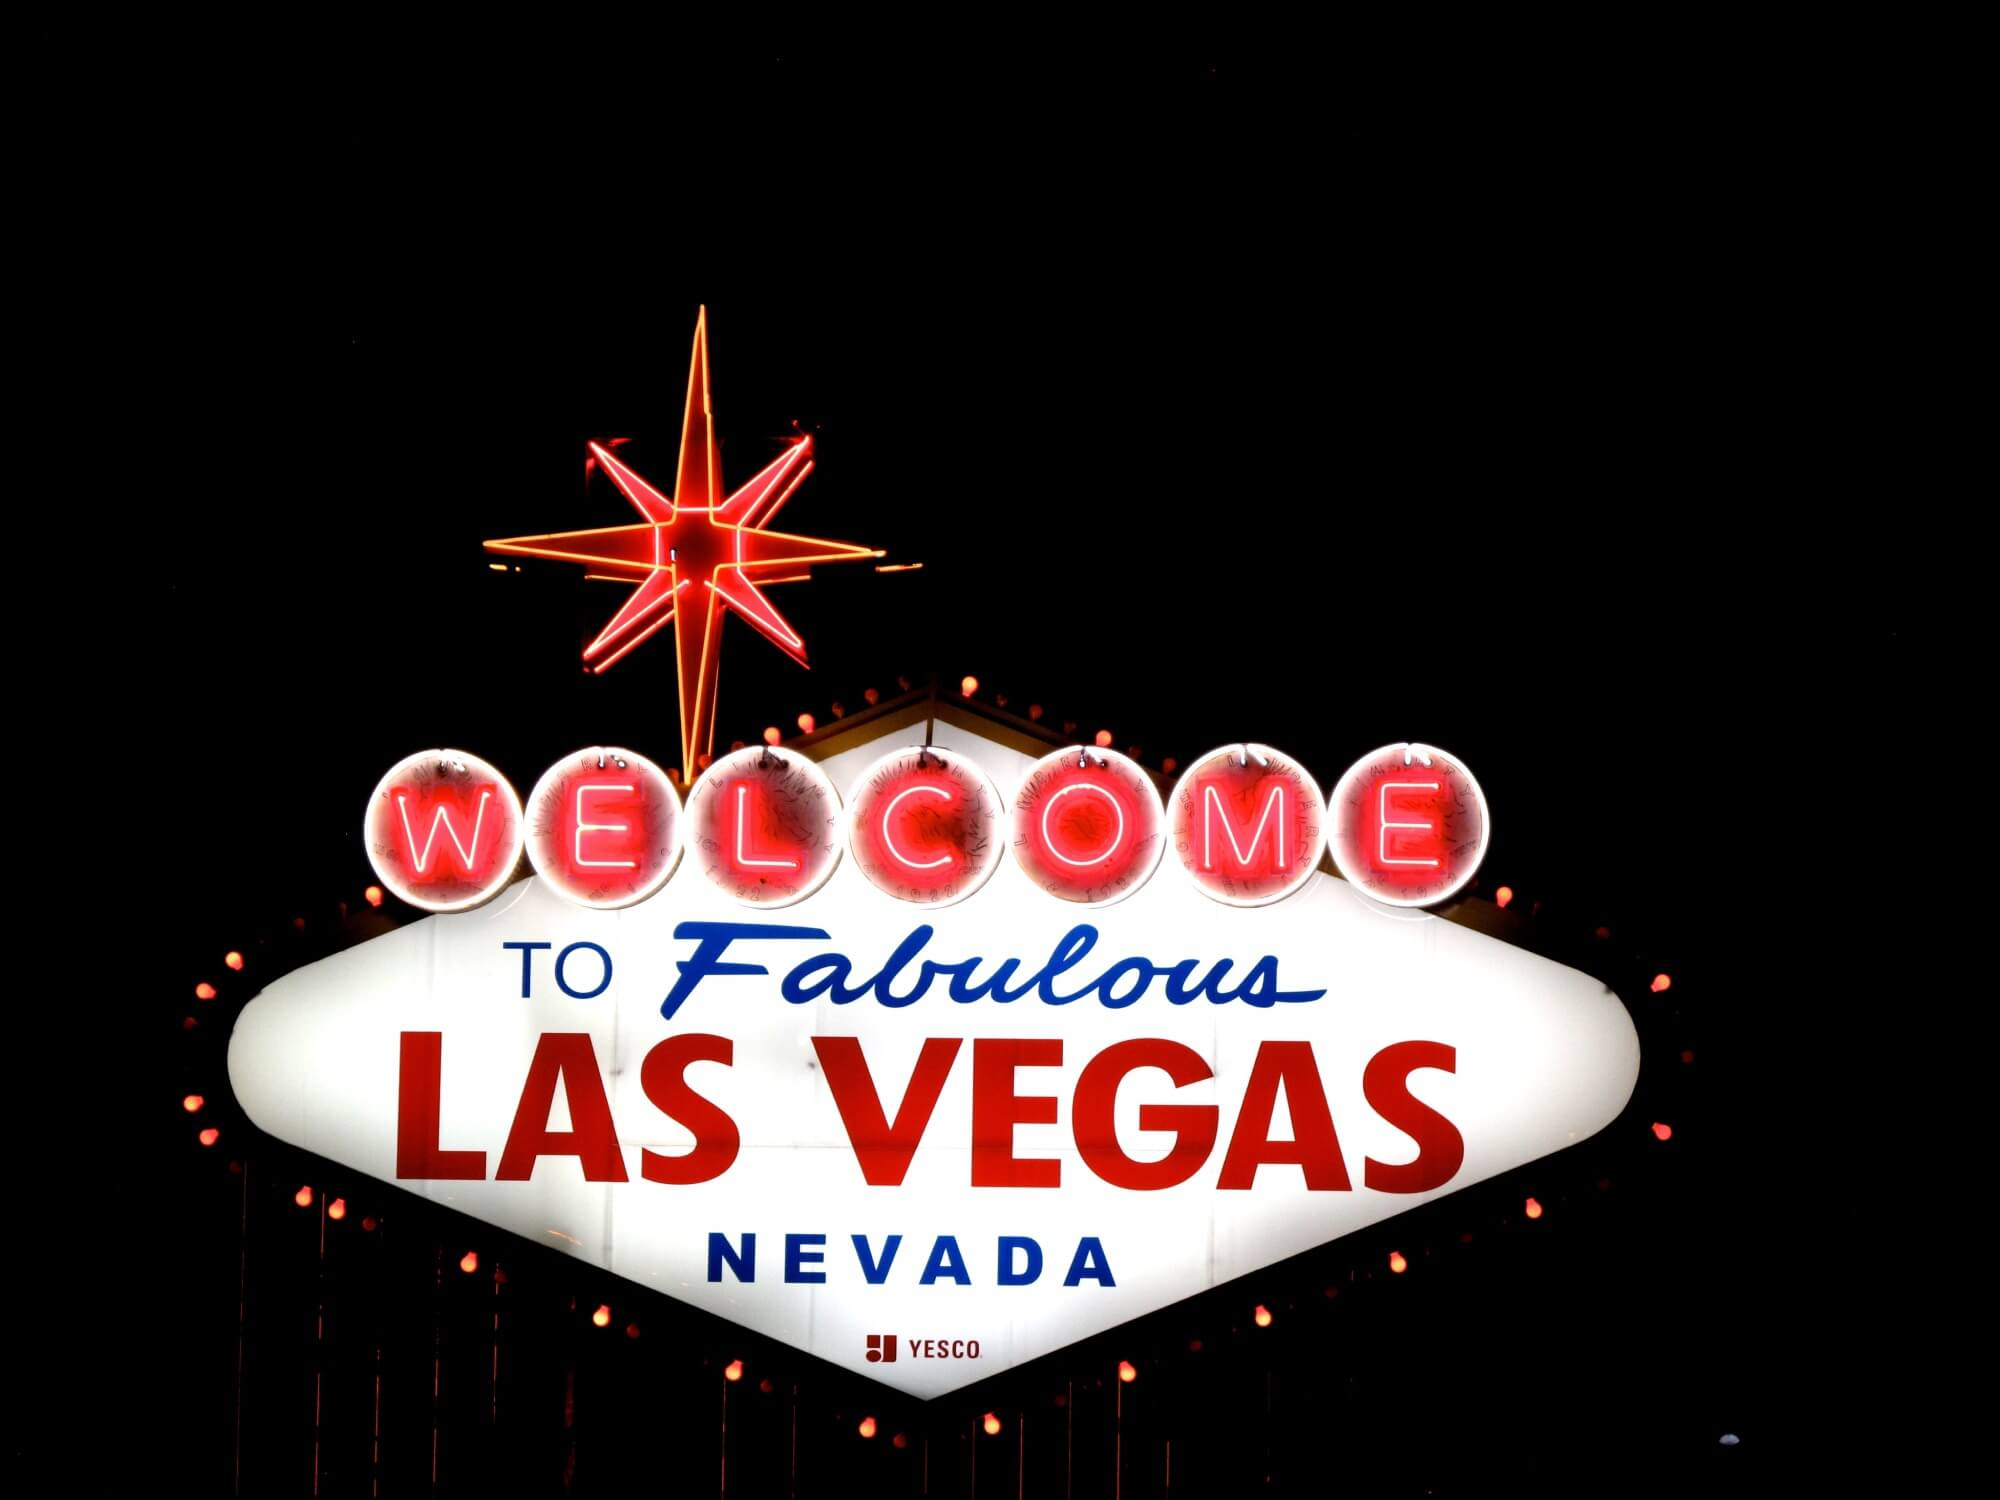 """The iconic """"Welcome to Fabulous Las Nevada"""" sign that attendees will see when they arrive in Vegas for the Nightclub and Bar Show."""